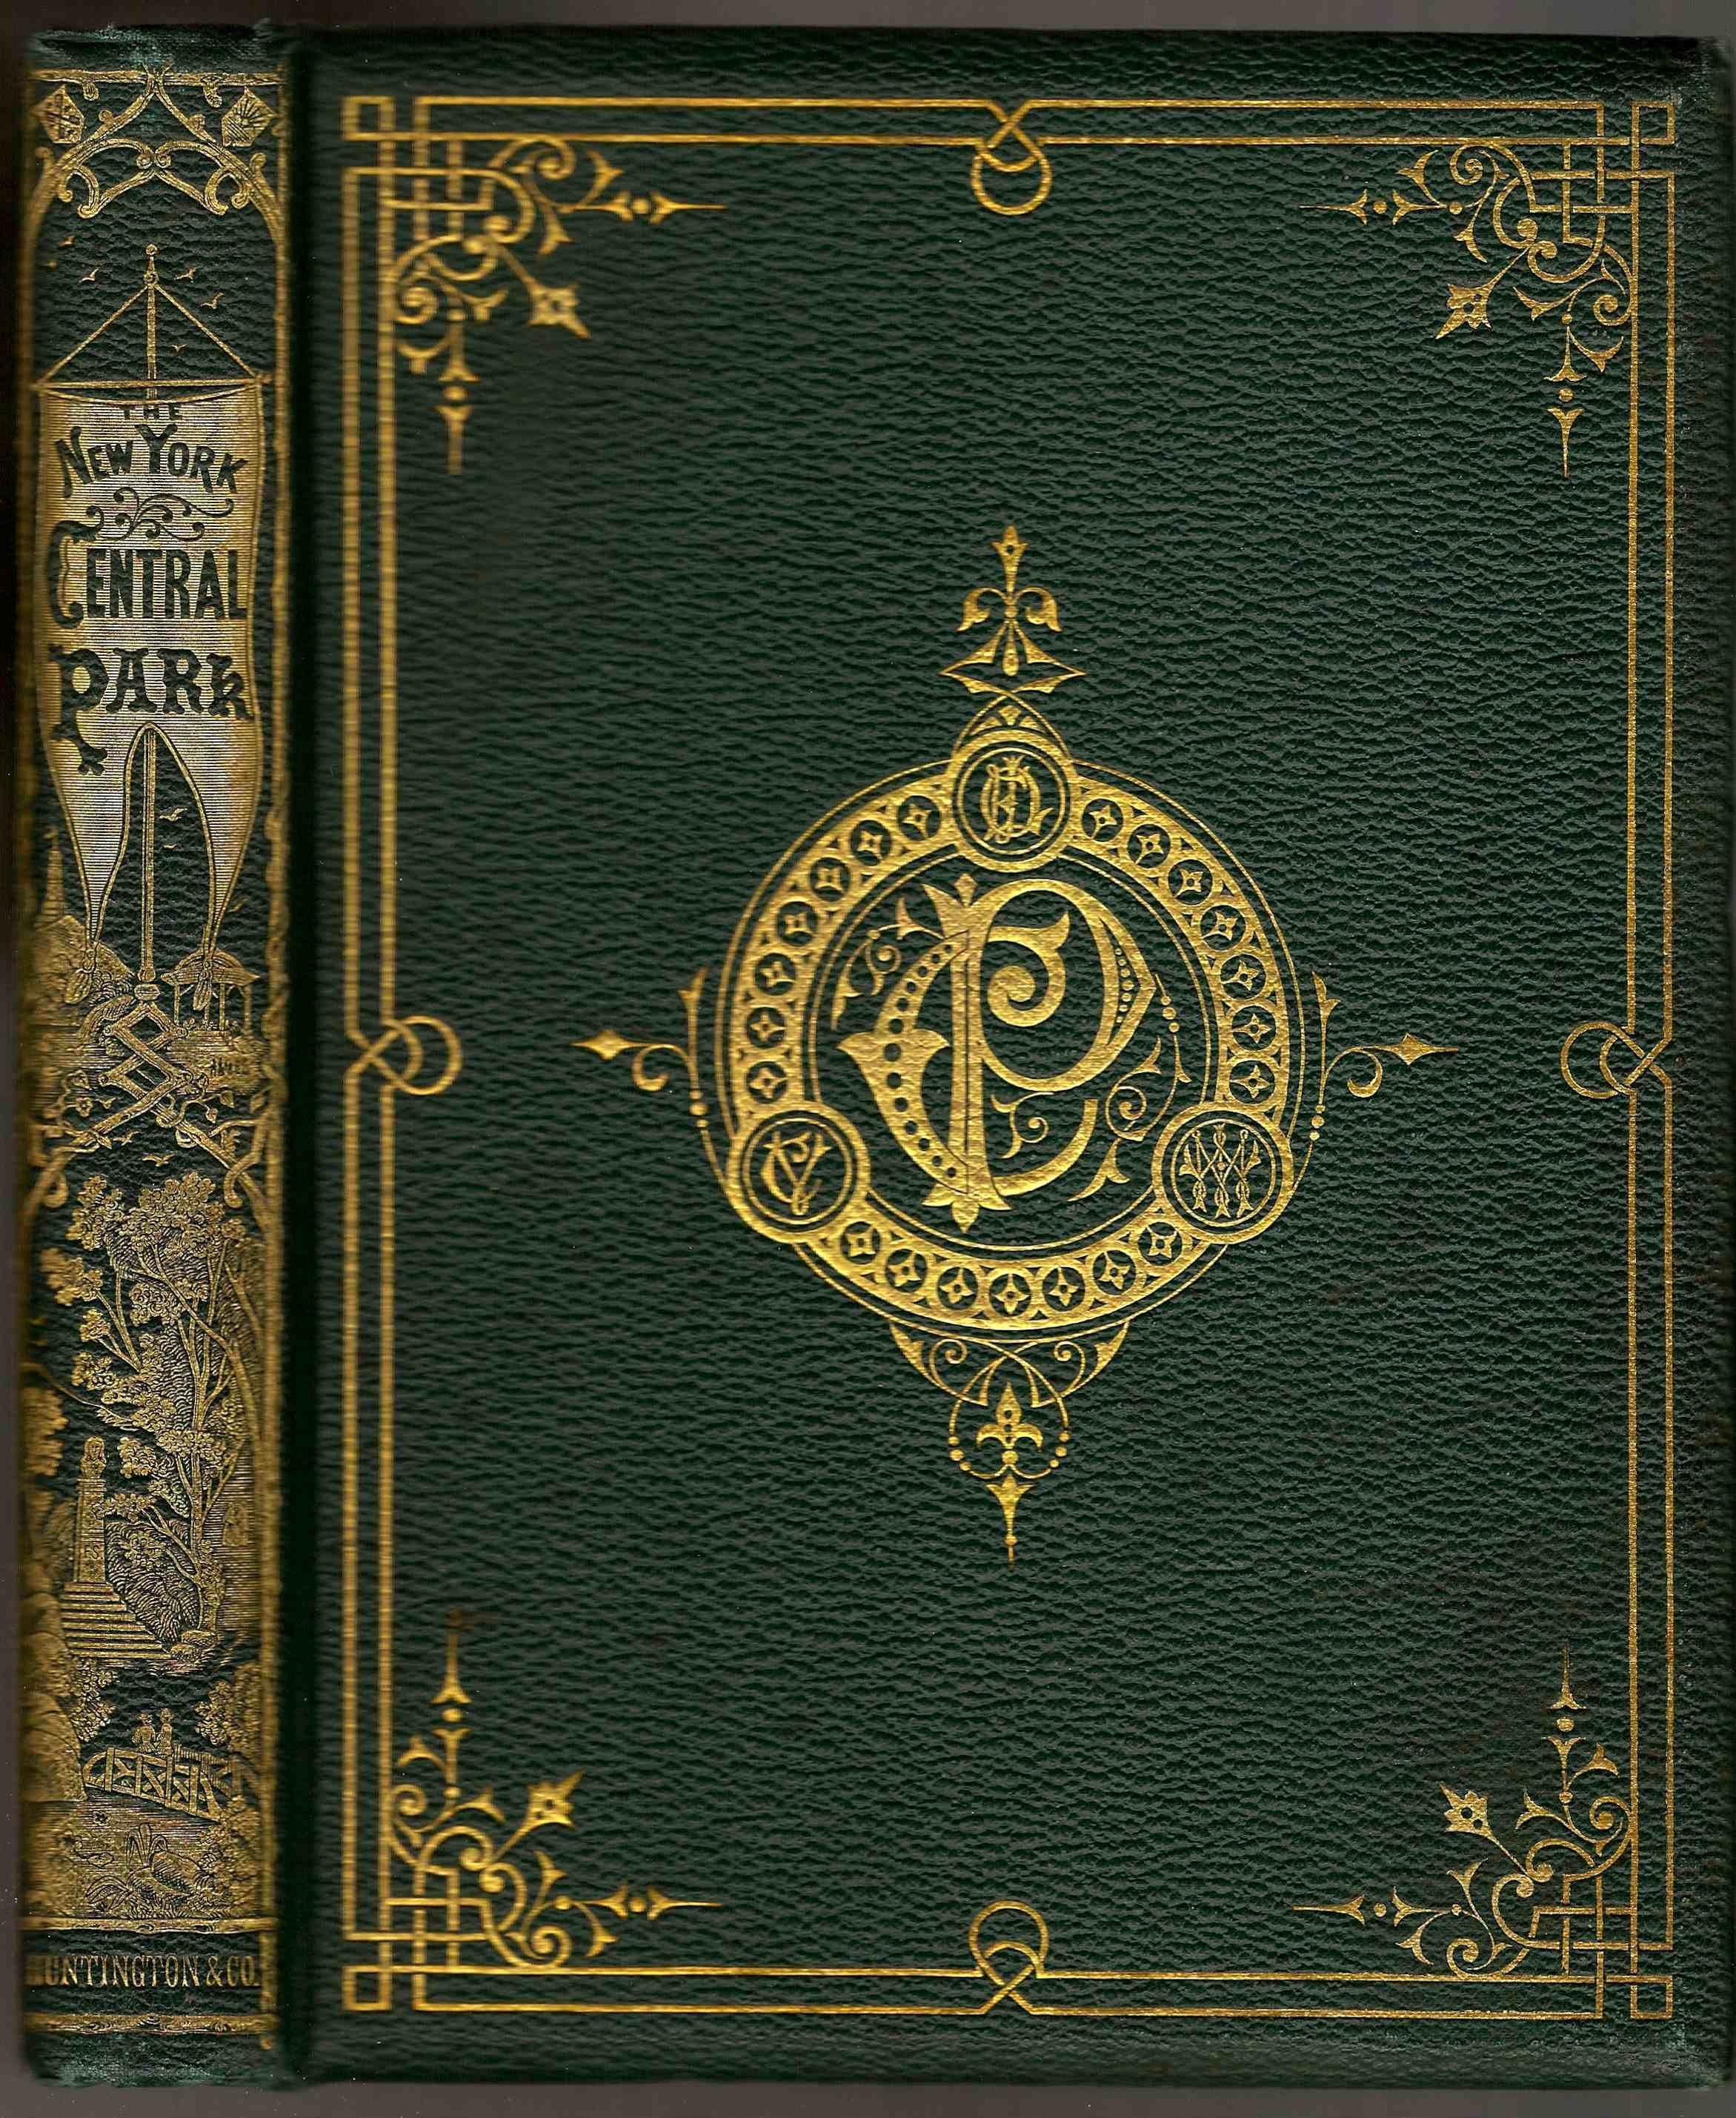 Vintage Book Cover Template : A description of the new york central park loki cover